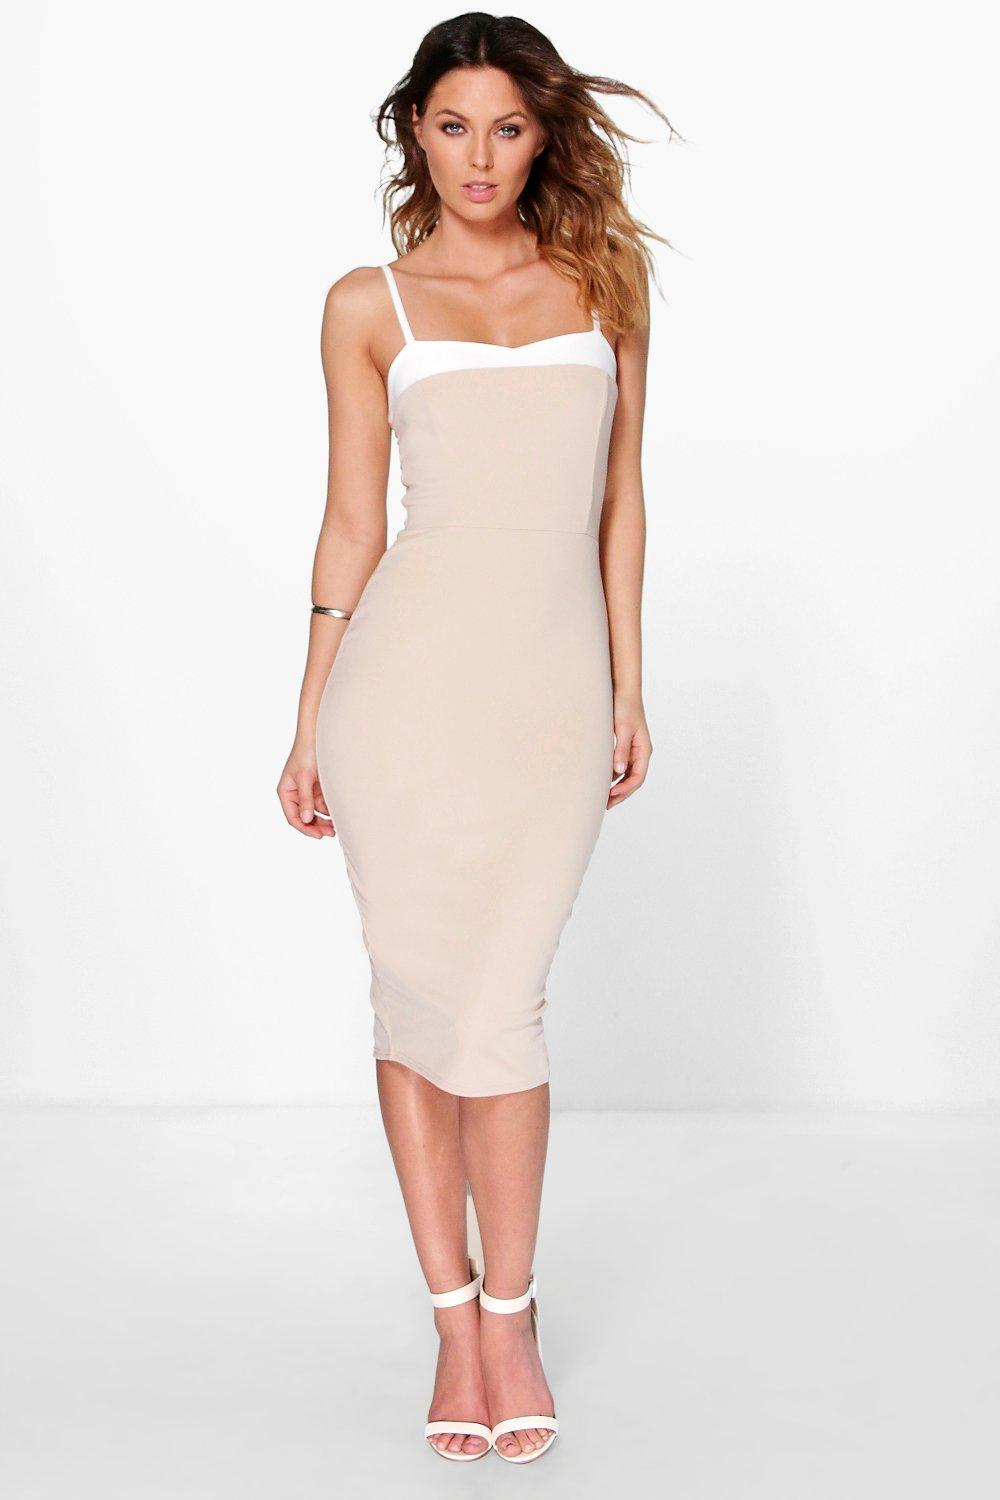 Stassy Sweetheart Contrast Neck Mid Dress